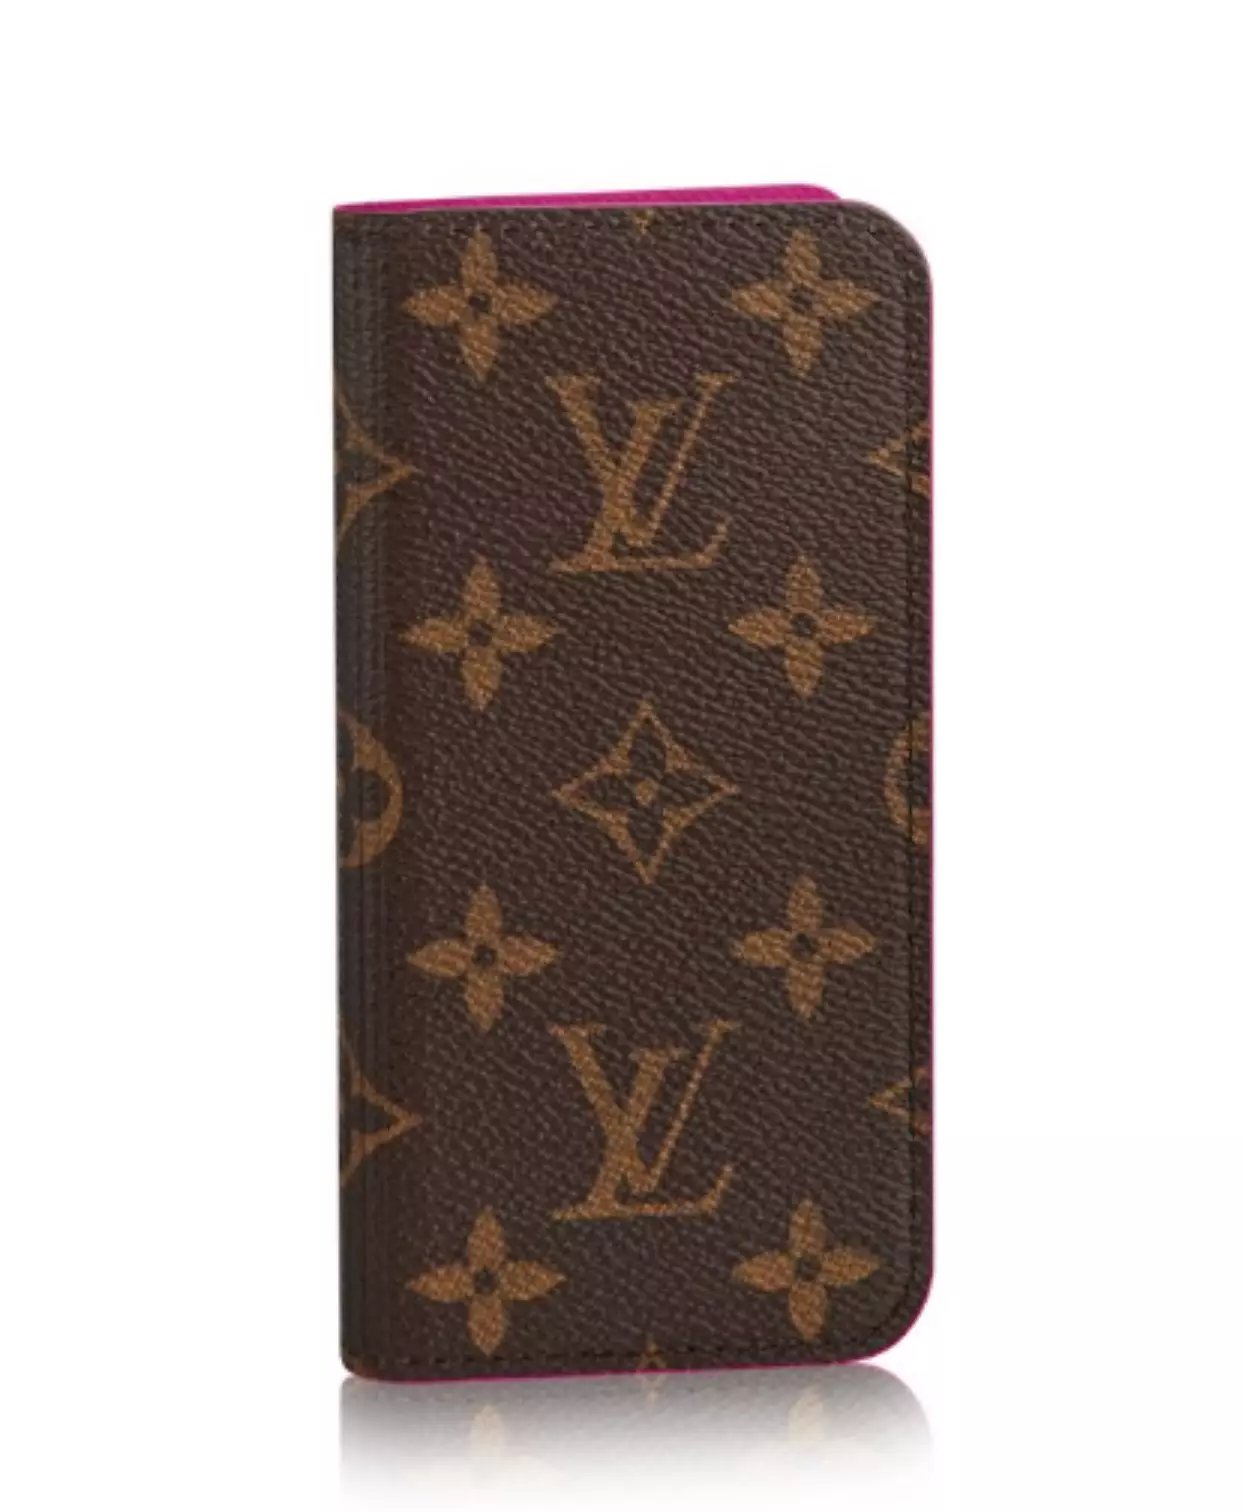 iphone case selbst gestalten foto iphone hülle Louis Vuitton iphone7 Plus hülle leder flip ca7 iphone 7 Plus ilikon ca7 handytasche 7 iphone 6 kamera iphone 7 Plus hülle wech7ln apple iphone 7 Plus schutzhülle